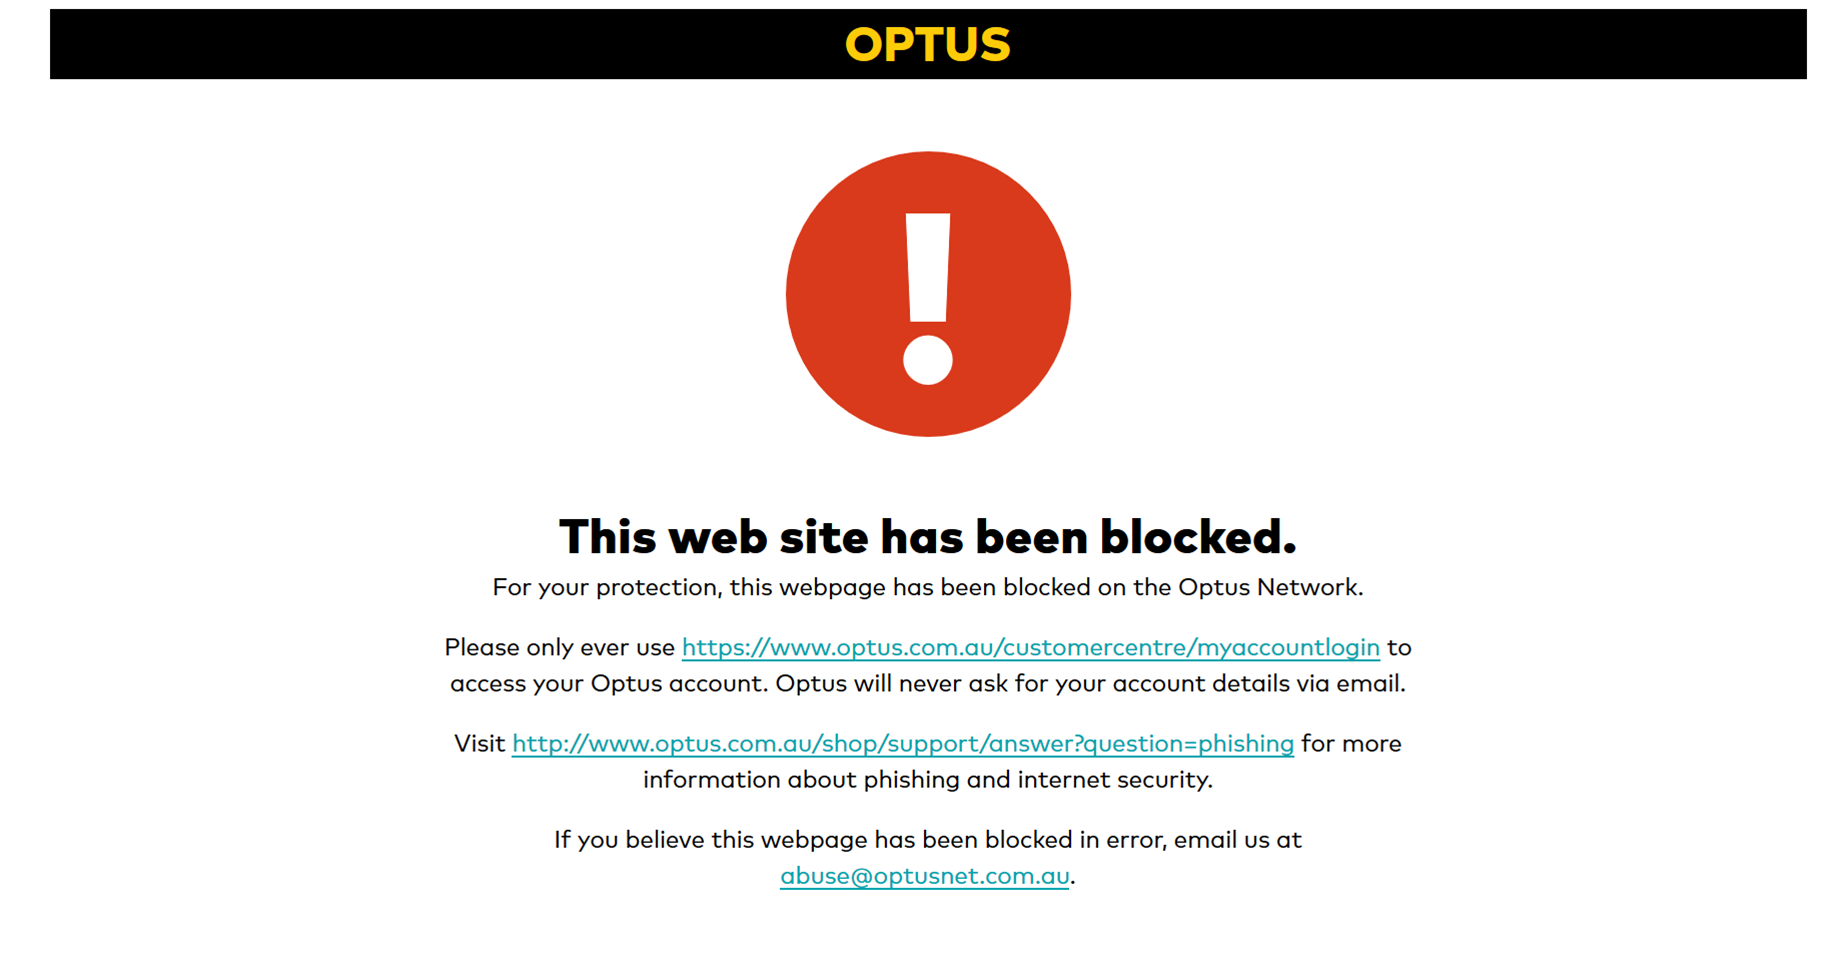 Optus accidentally blocks all bit.ly links